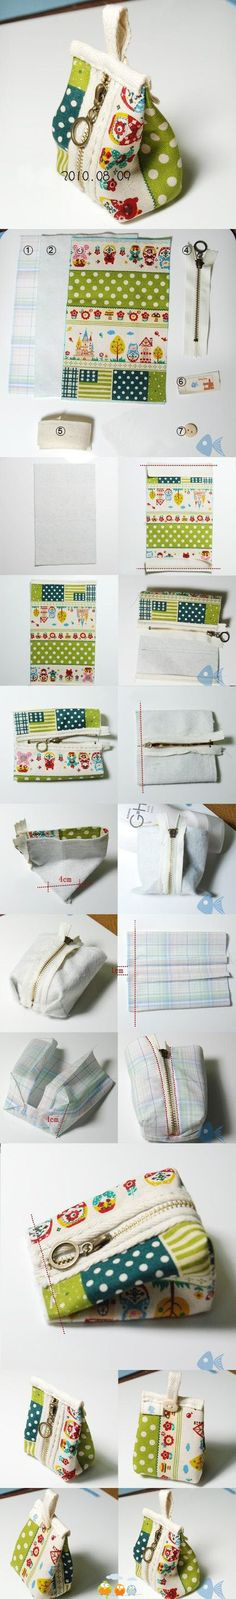 How to Make Stylish Fabric Handmade bags                                                                                                                                                                                 More